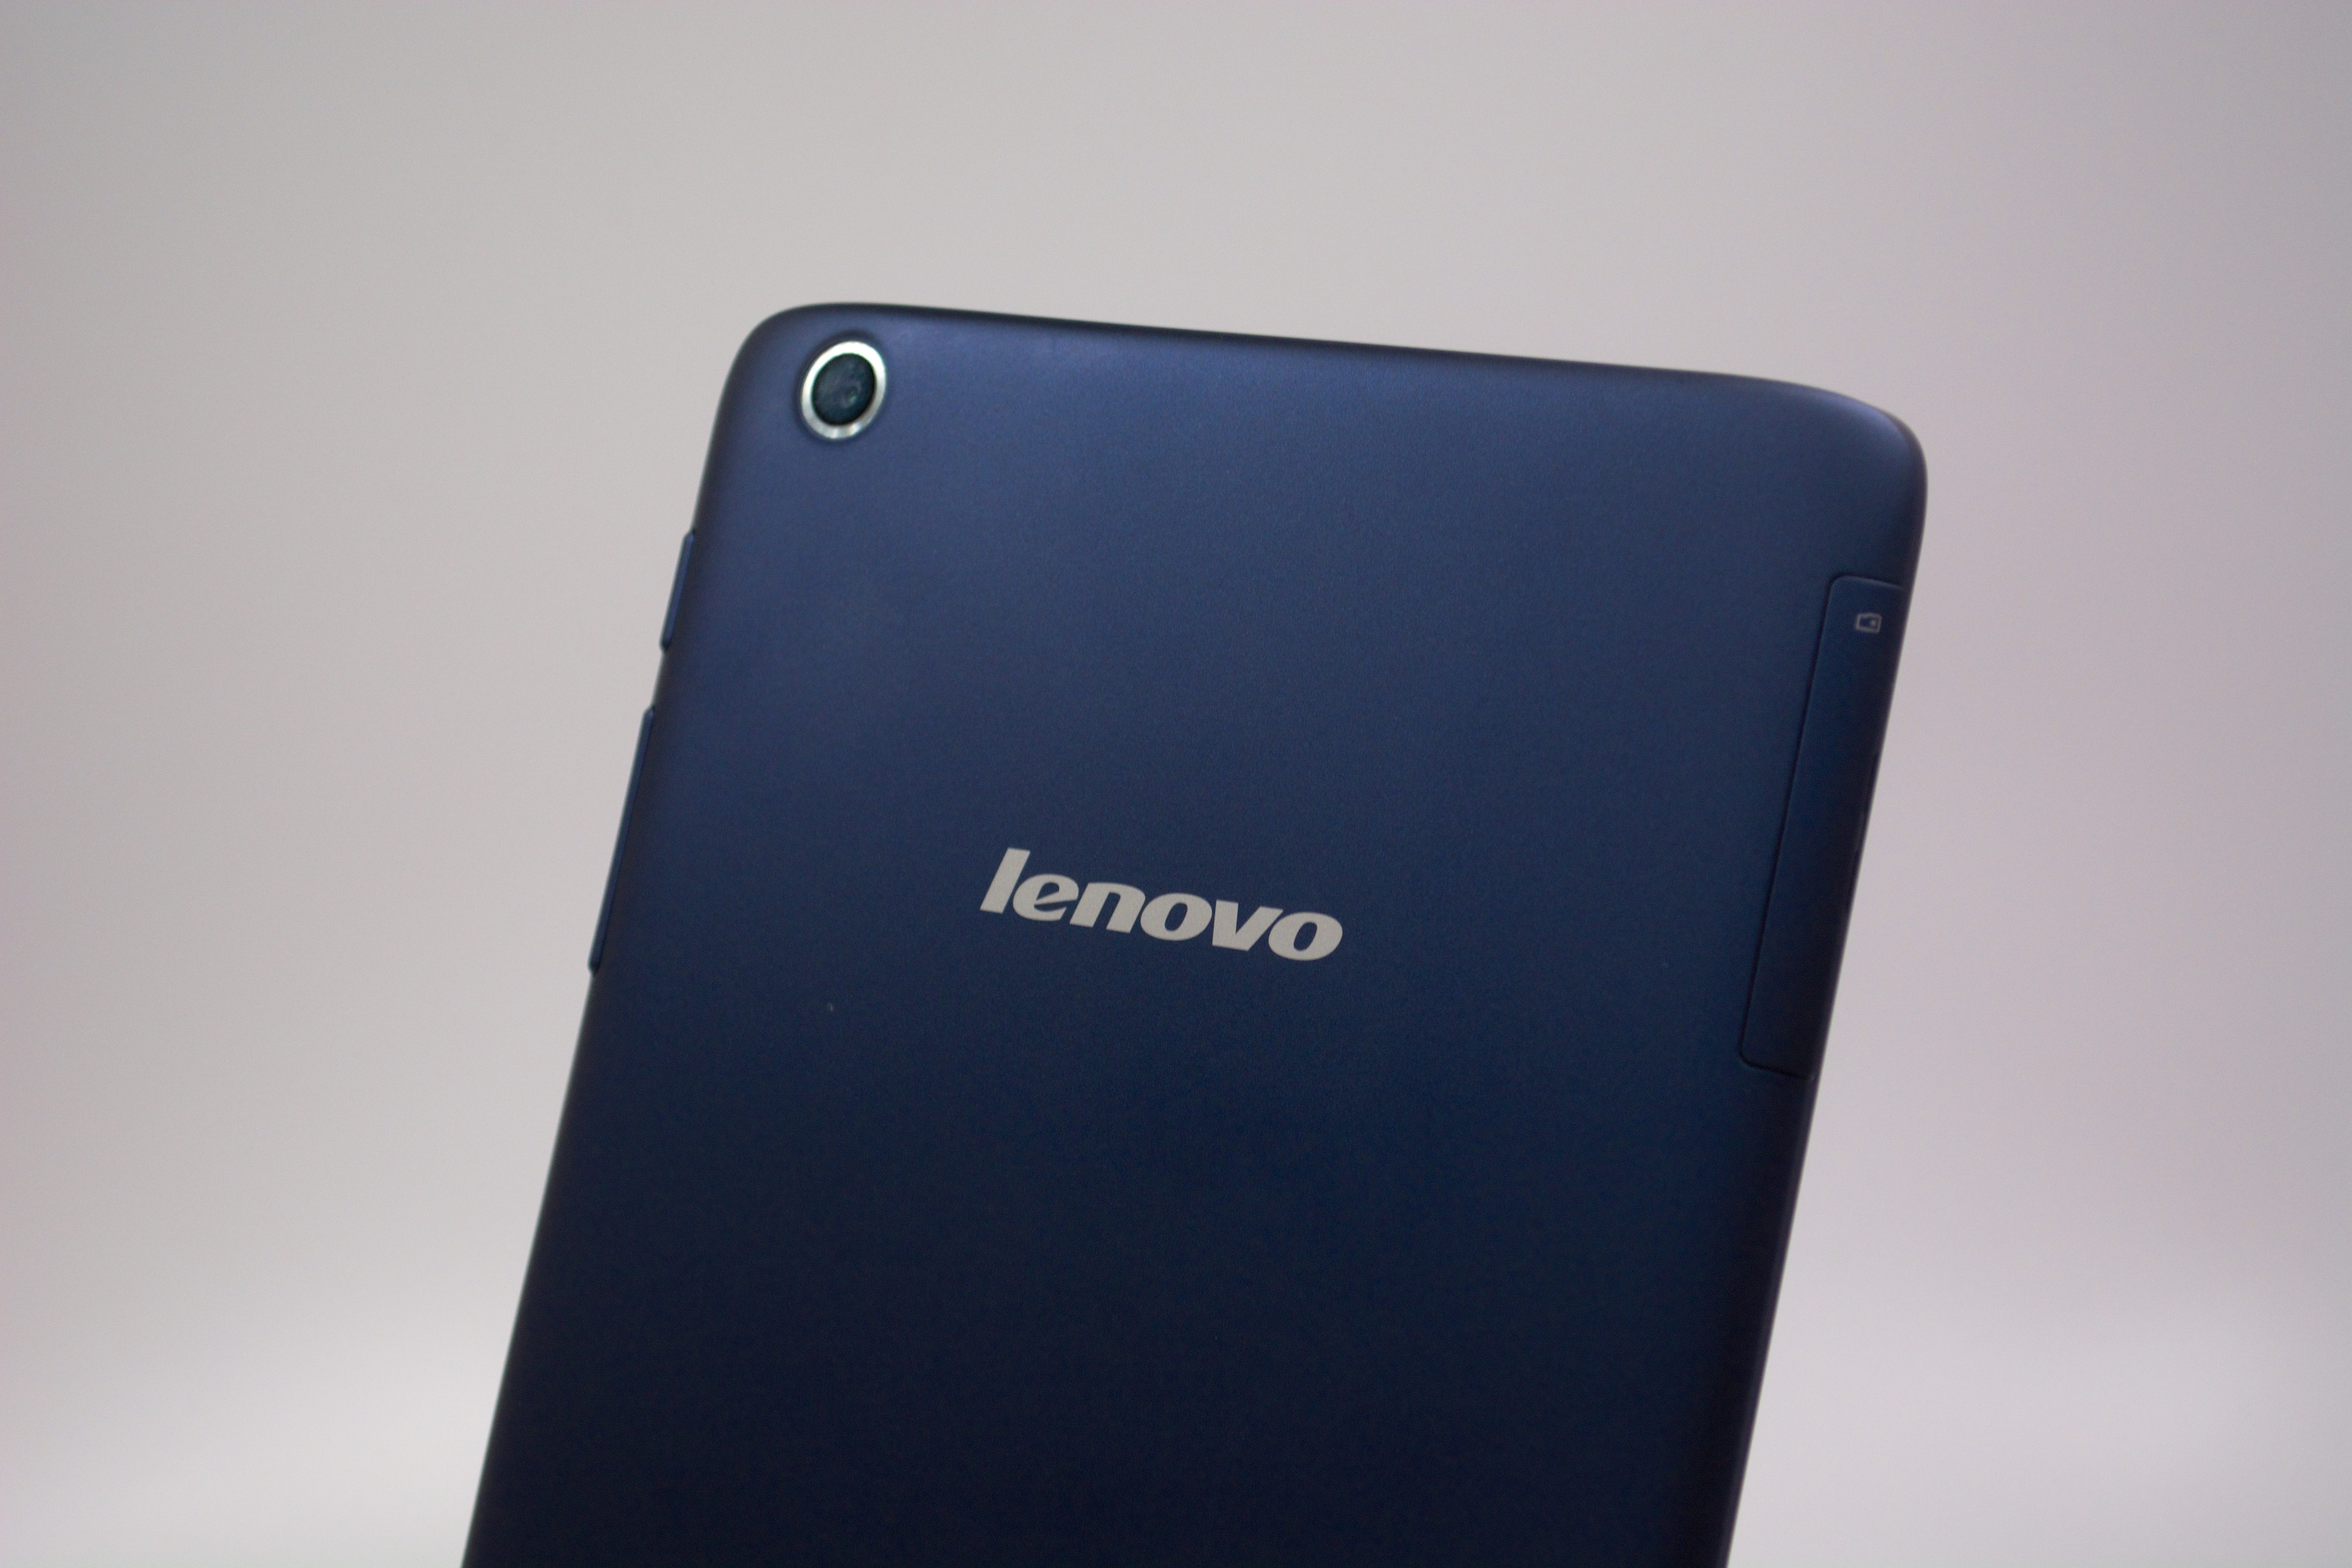 The Lenovo A8 is a cheap Android tablet that doesn't feel cheap, and can handle any app or task you throw at it.